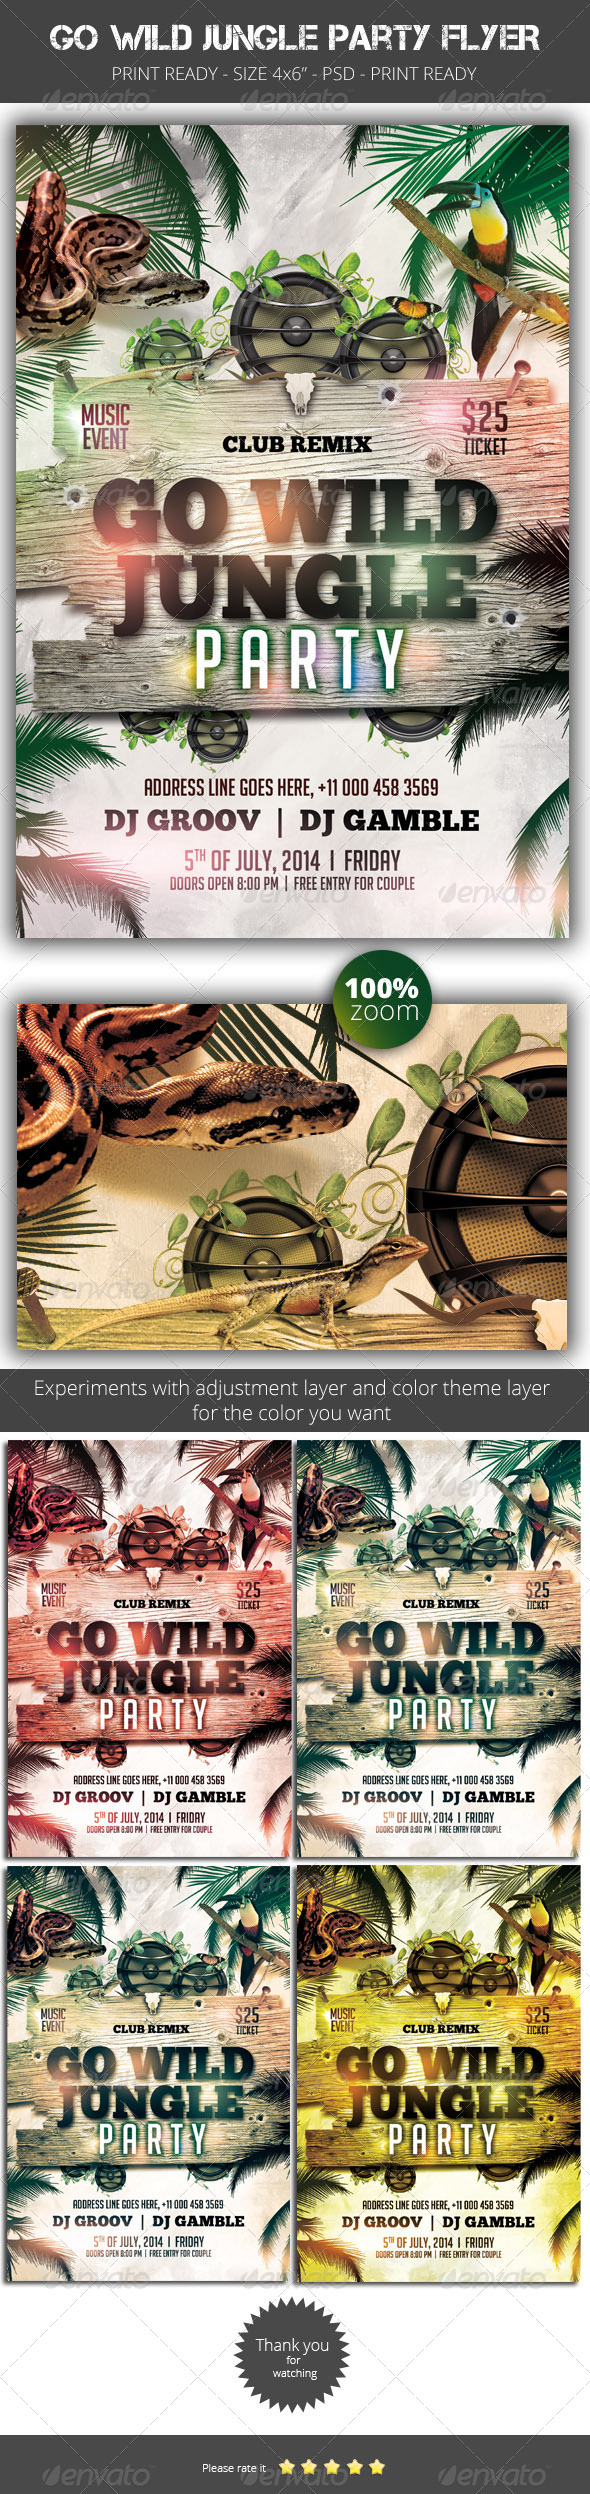 GraphicRiver Go Wild Jungle Party Flyer 8468654